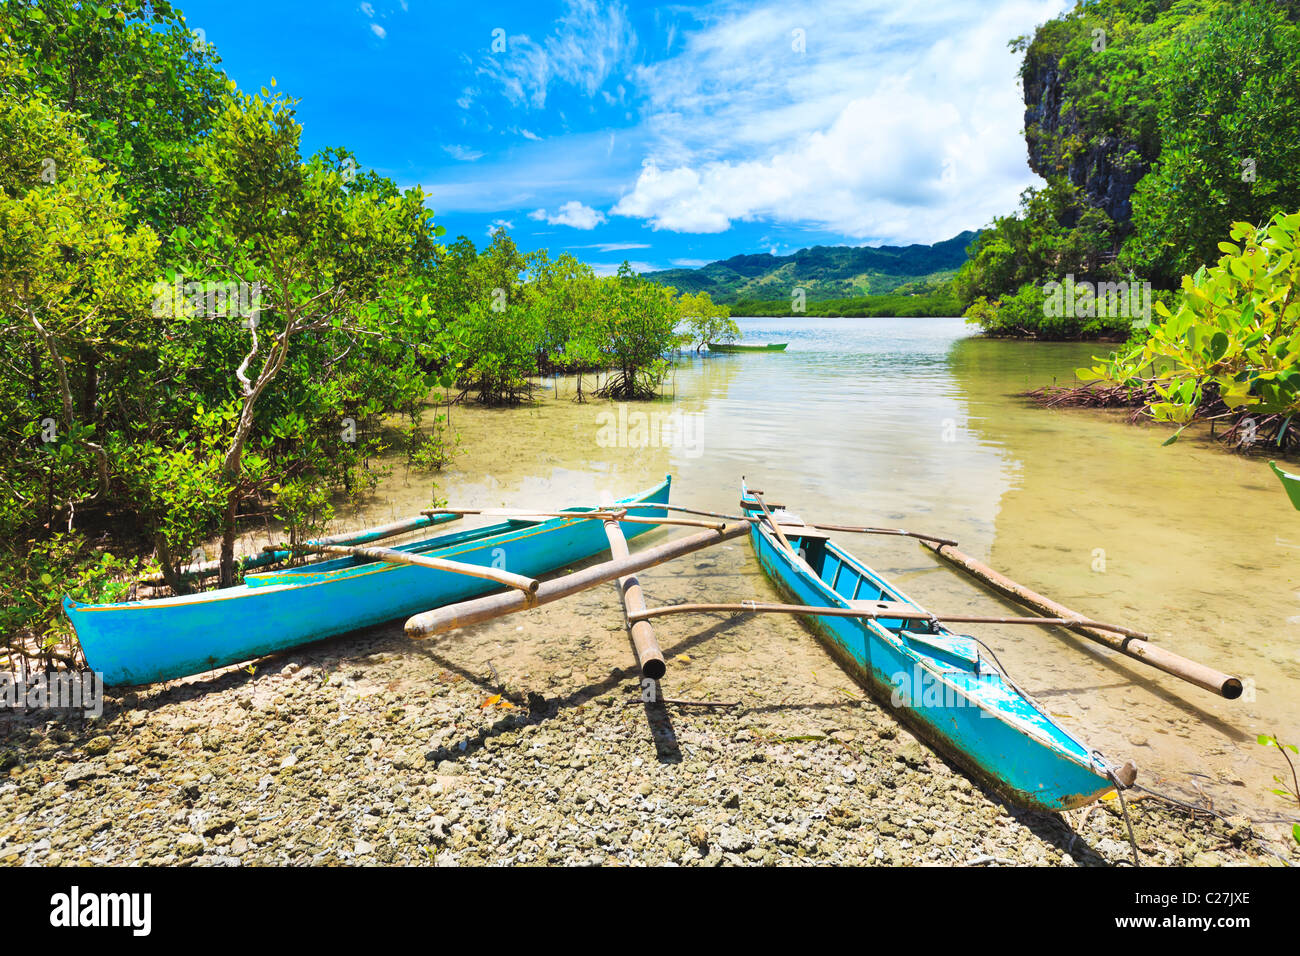 Traditional Philippine boat in the tropical lagoon - Stock Image